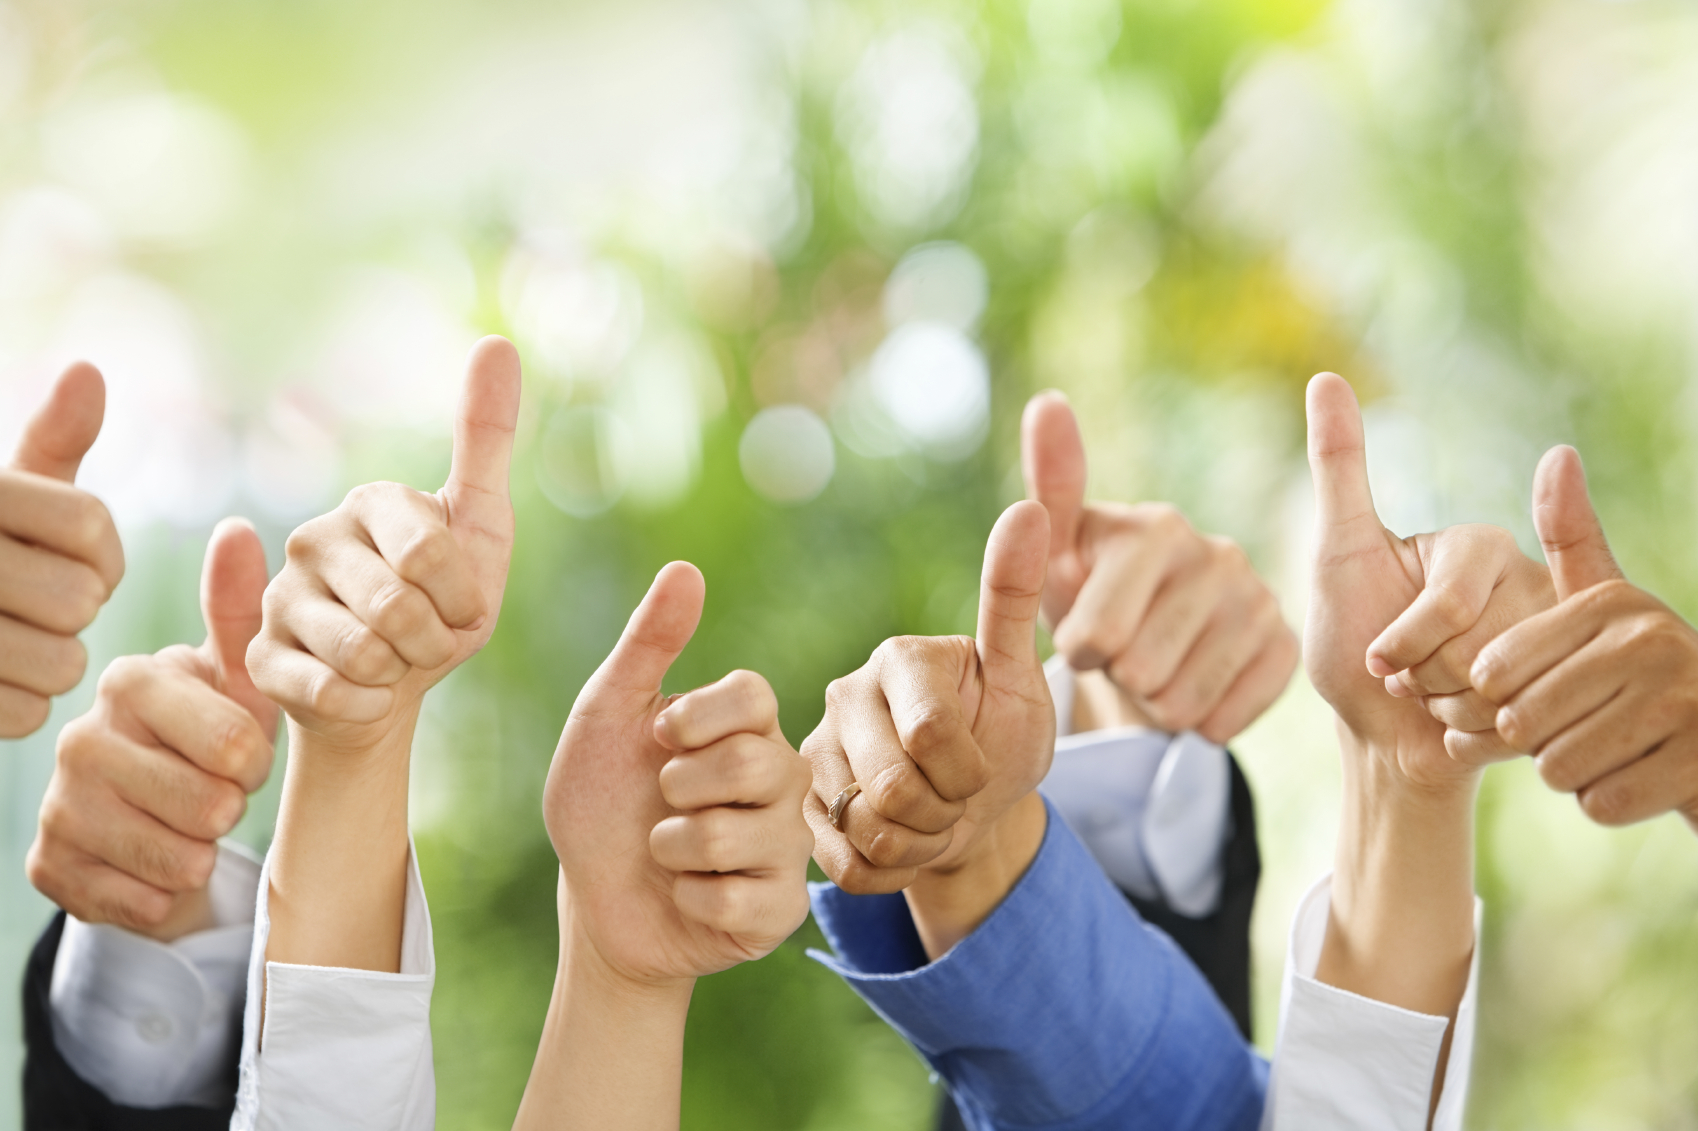 Thumbs up from diverse group of people on green background